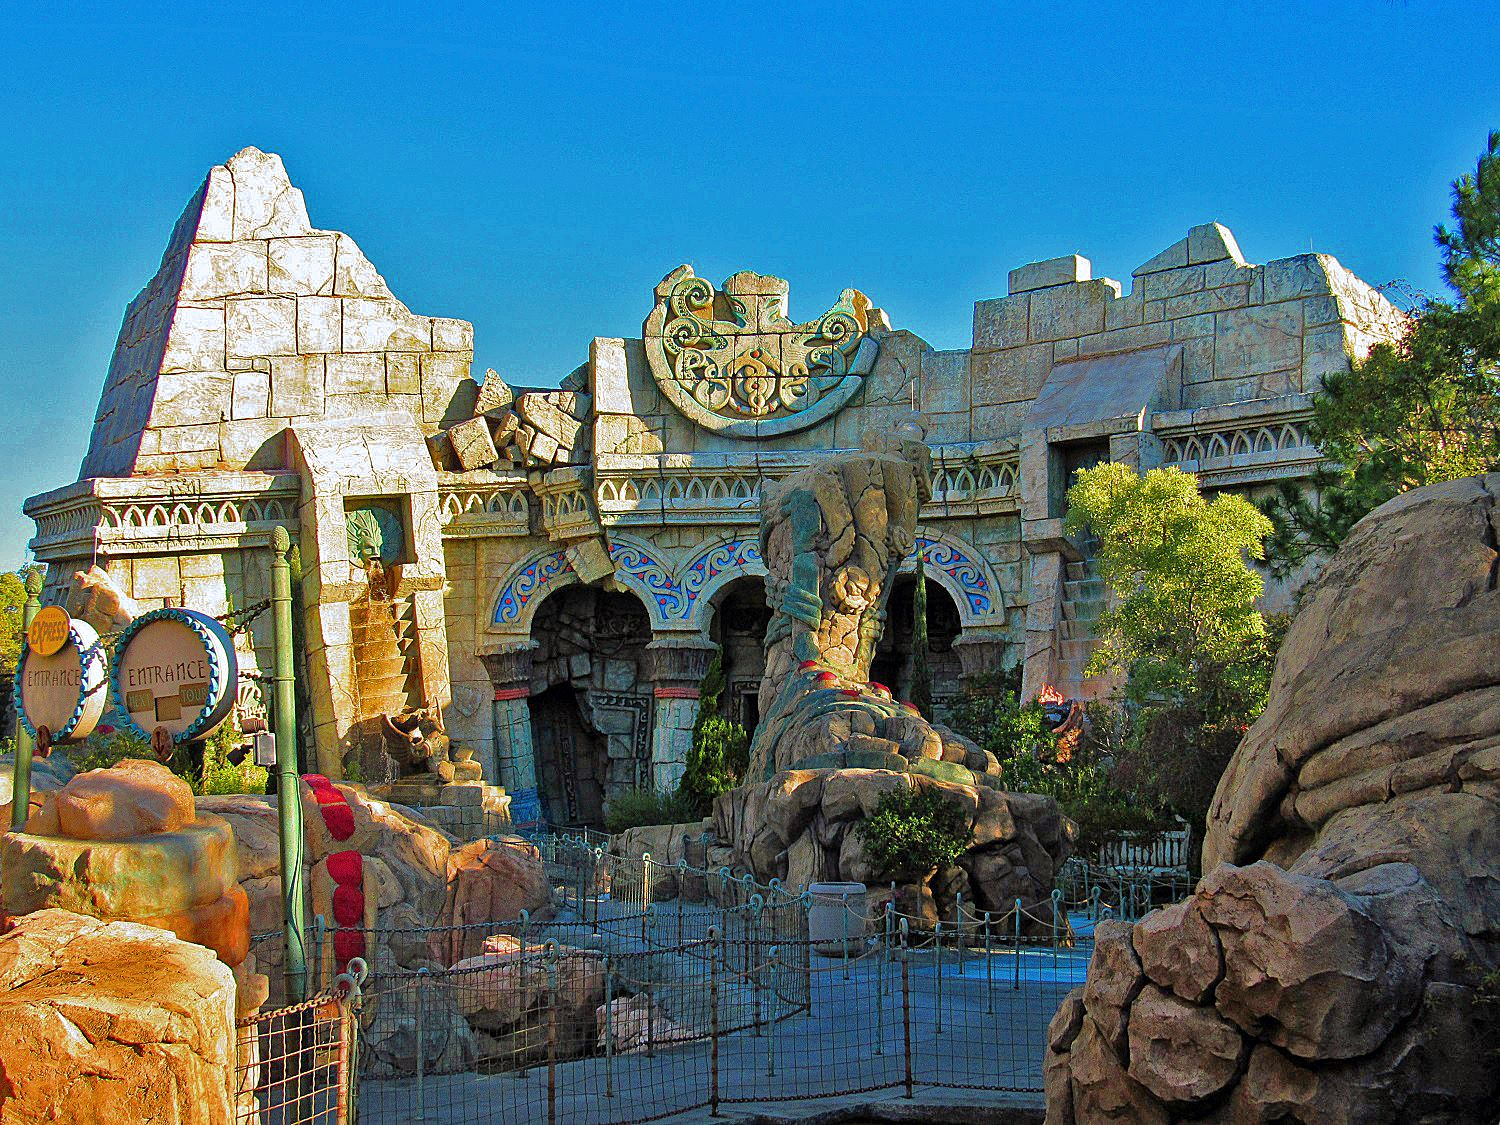 Poseidon's Fury is a show that incorporates a live guide,movie screens, and an array of special effects.